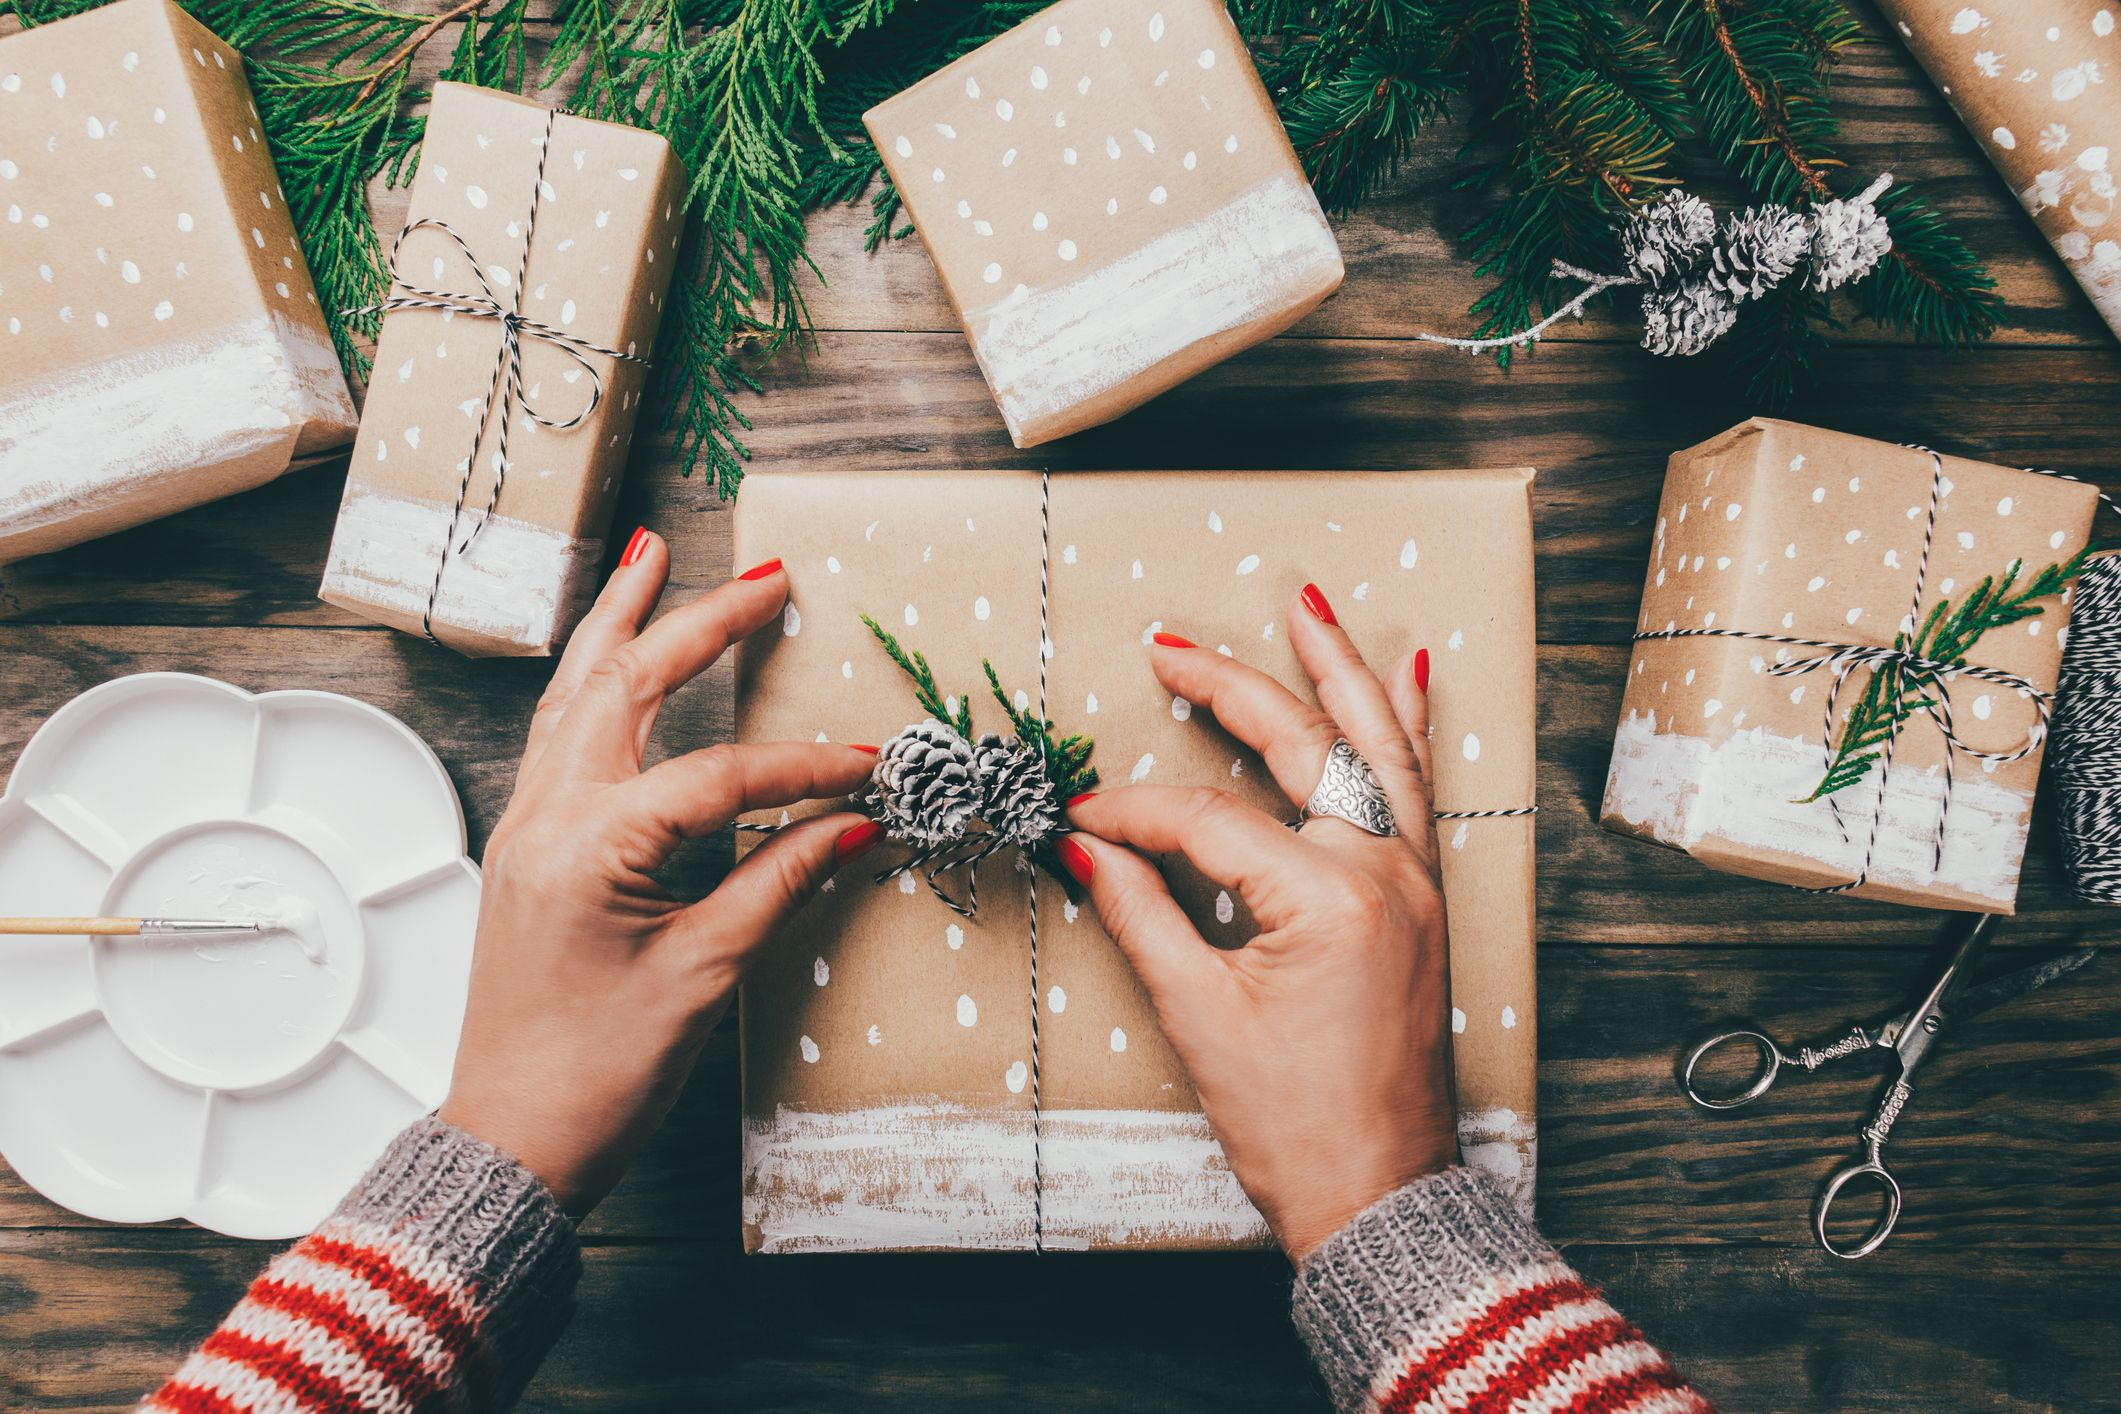 Why I Never Put Christmas Presents In Gift Bags - How To